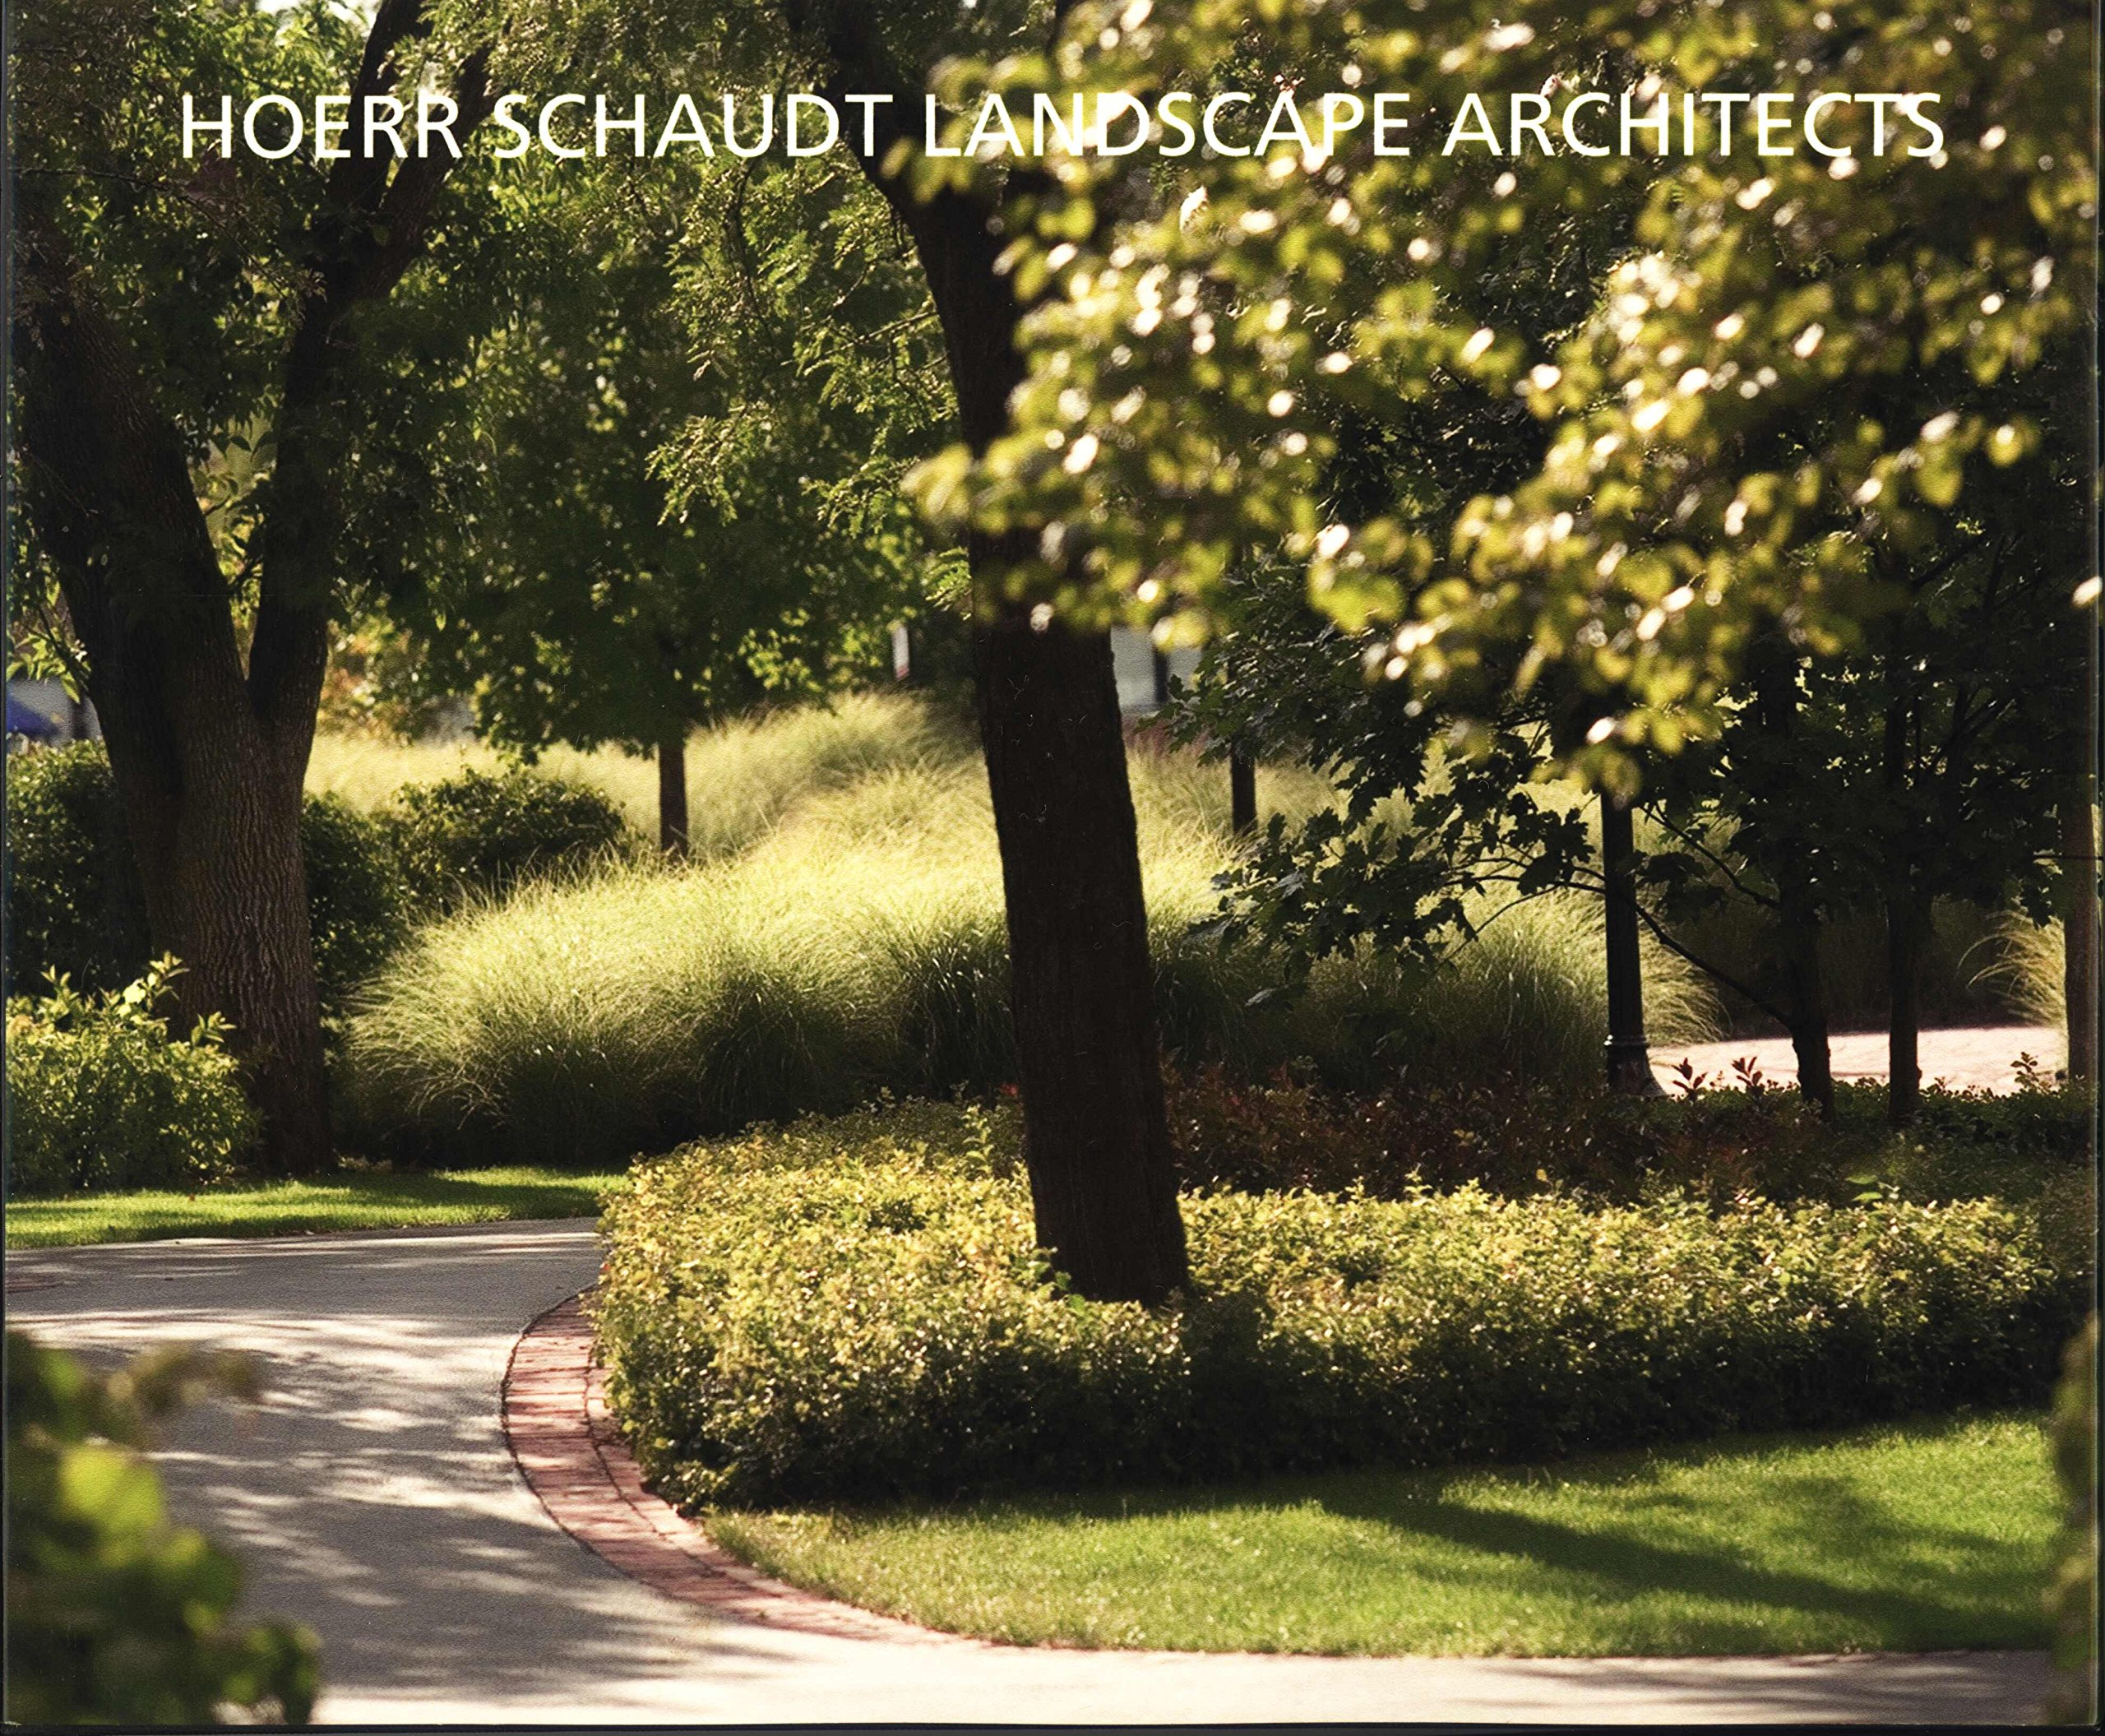 Hoerr Schaudt Landscape Architects A Collection Of Images Hoerr